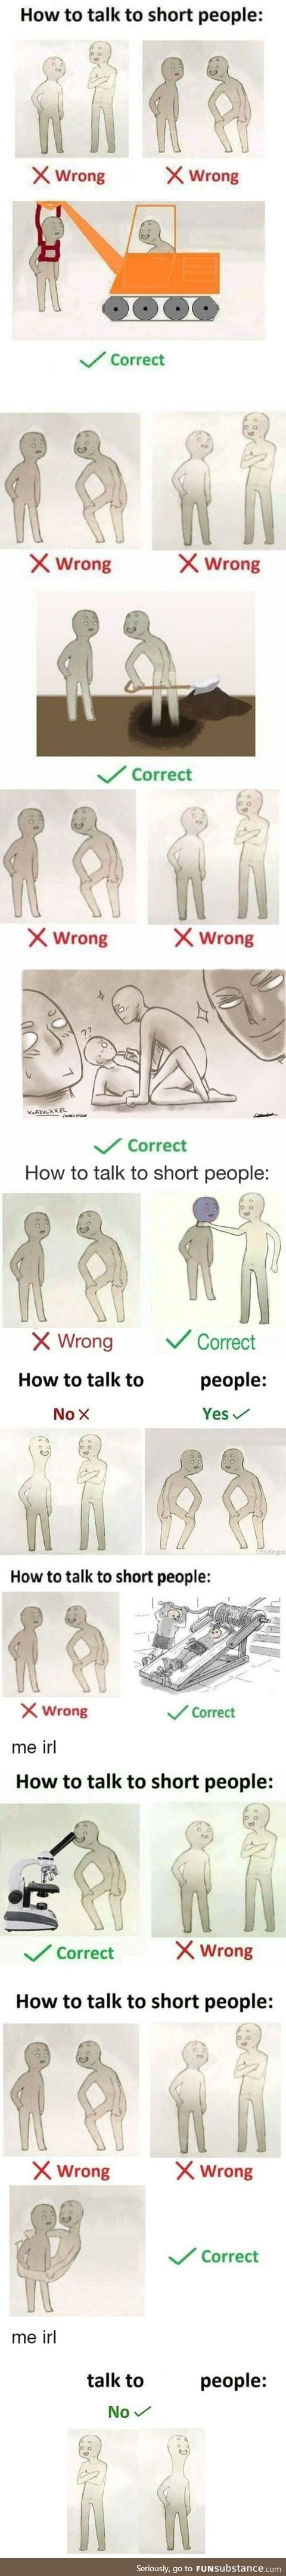 How to talk to small ppl comp